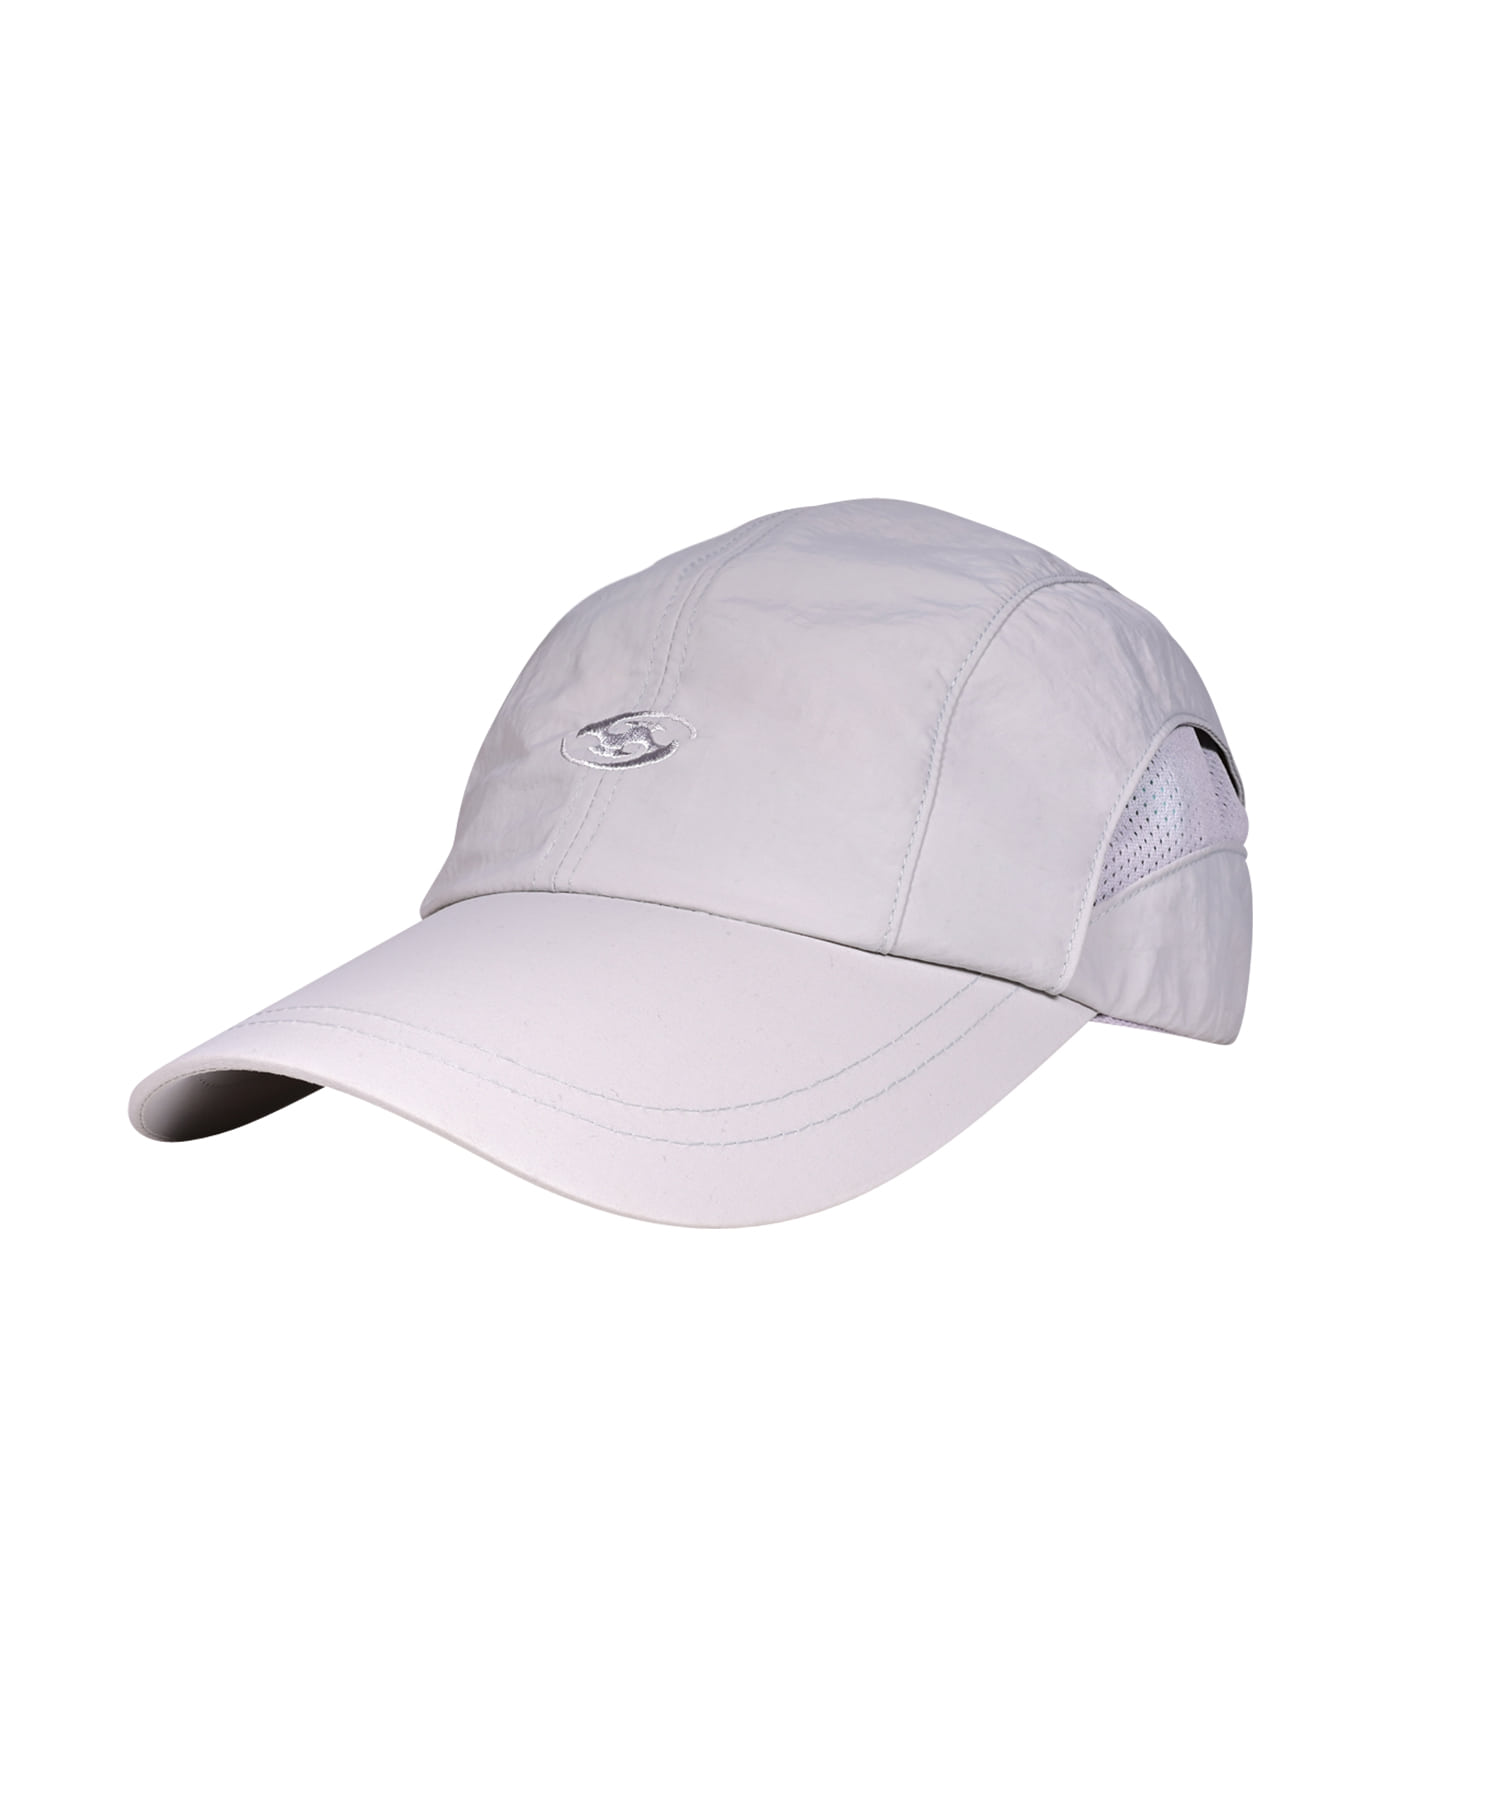 WING CAP GRAY